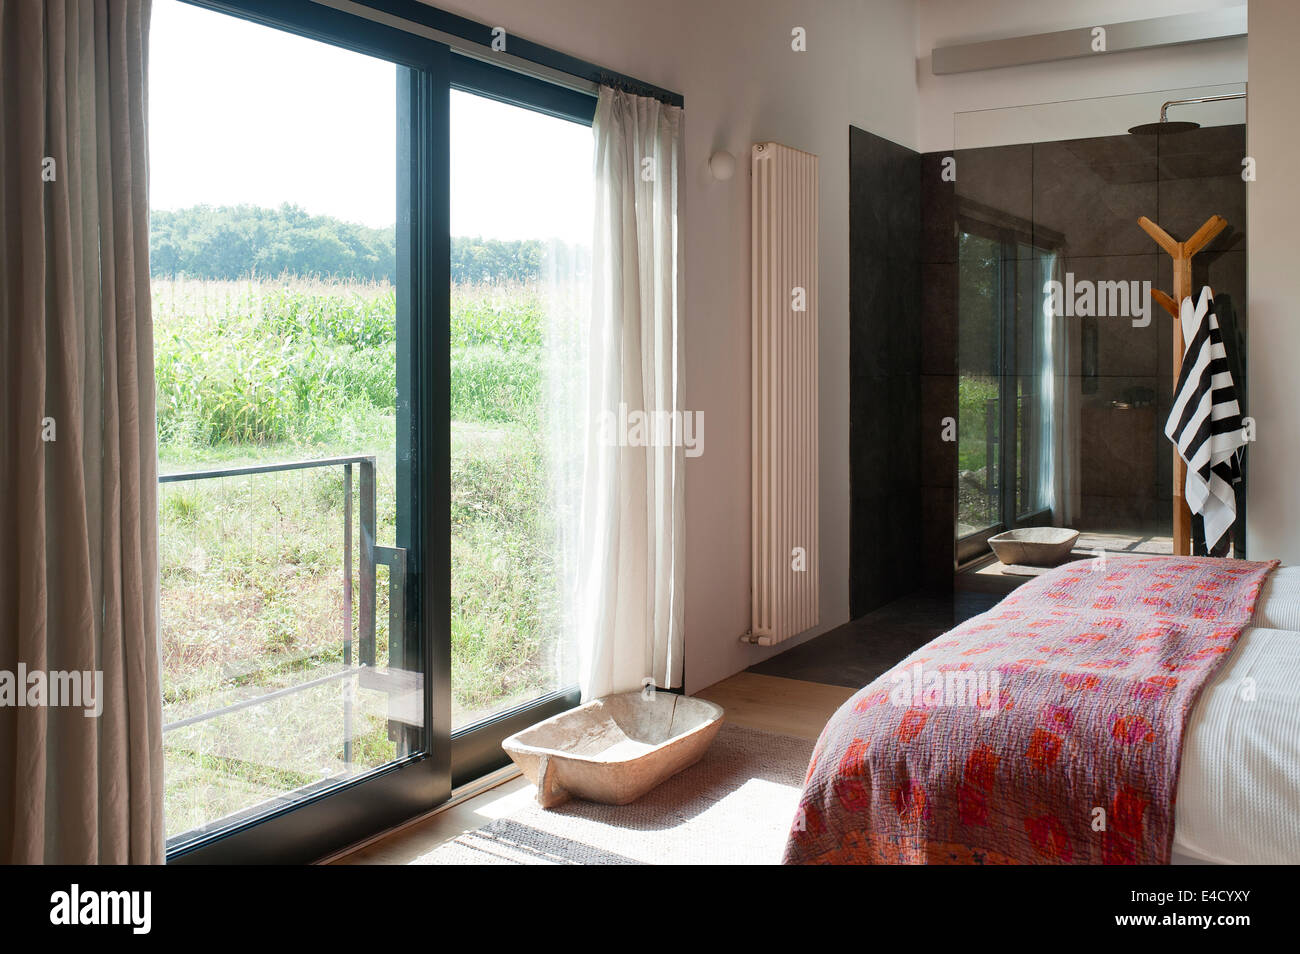 French windows for bedroom - Patterned Quilt On Bed In Bedroom With Ensuite Shower And French Windows With Rural Views